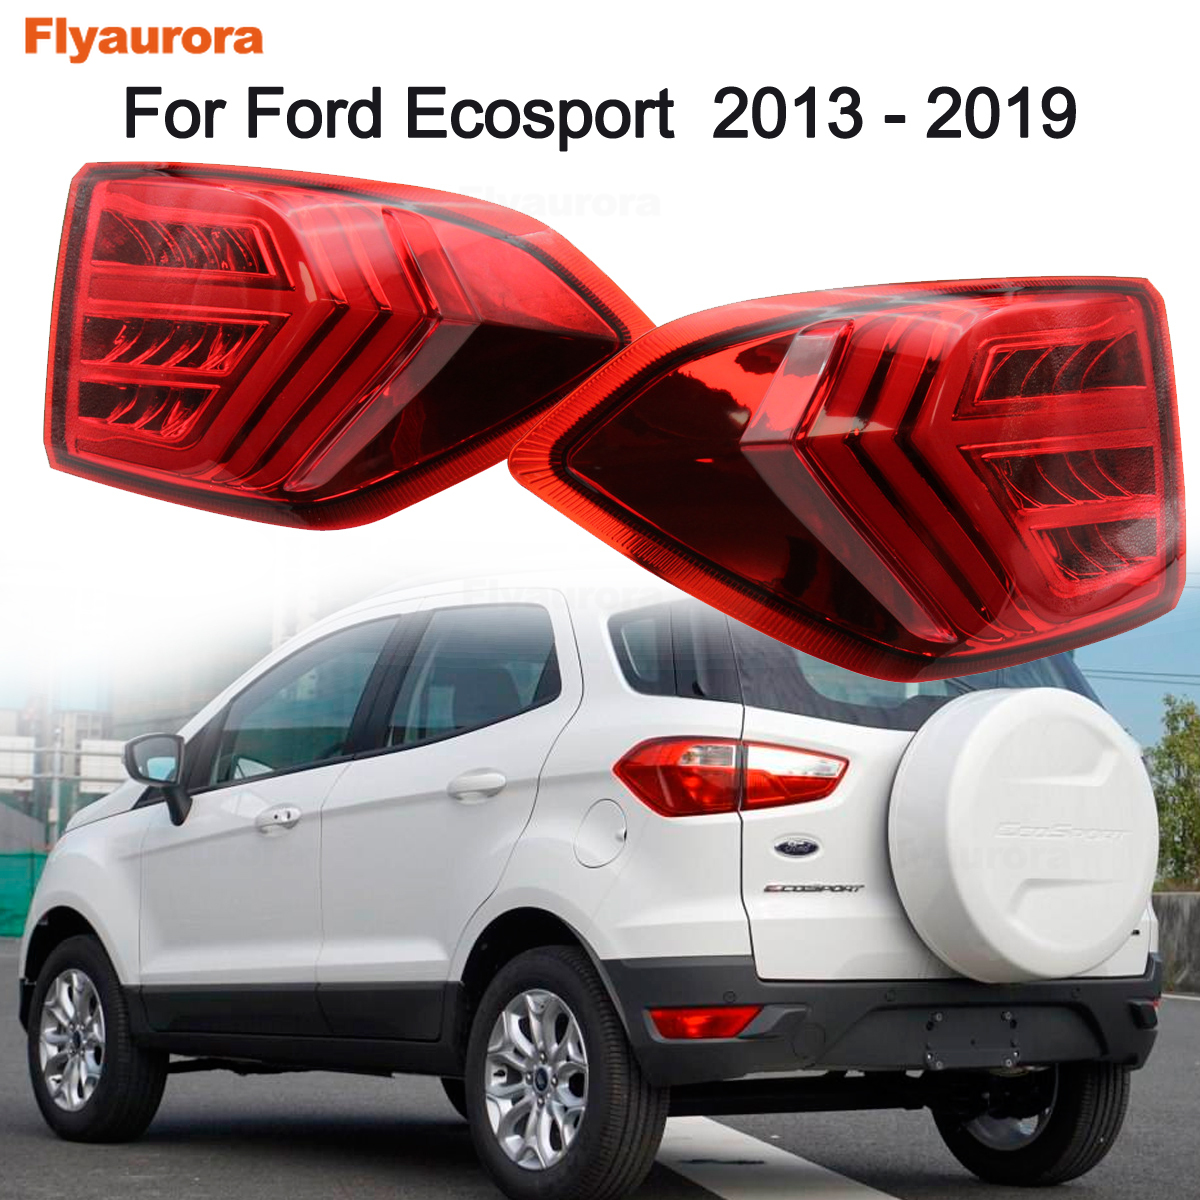 Car Styling For Ford Ecosport  2013 2014 2015 2016 2017 2018 2019 Year Outside Taillight Tail Lamp Rear Lights Car Accessories